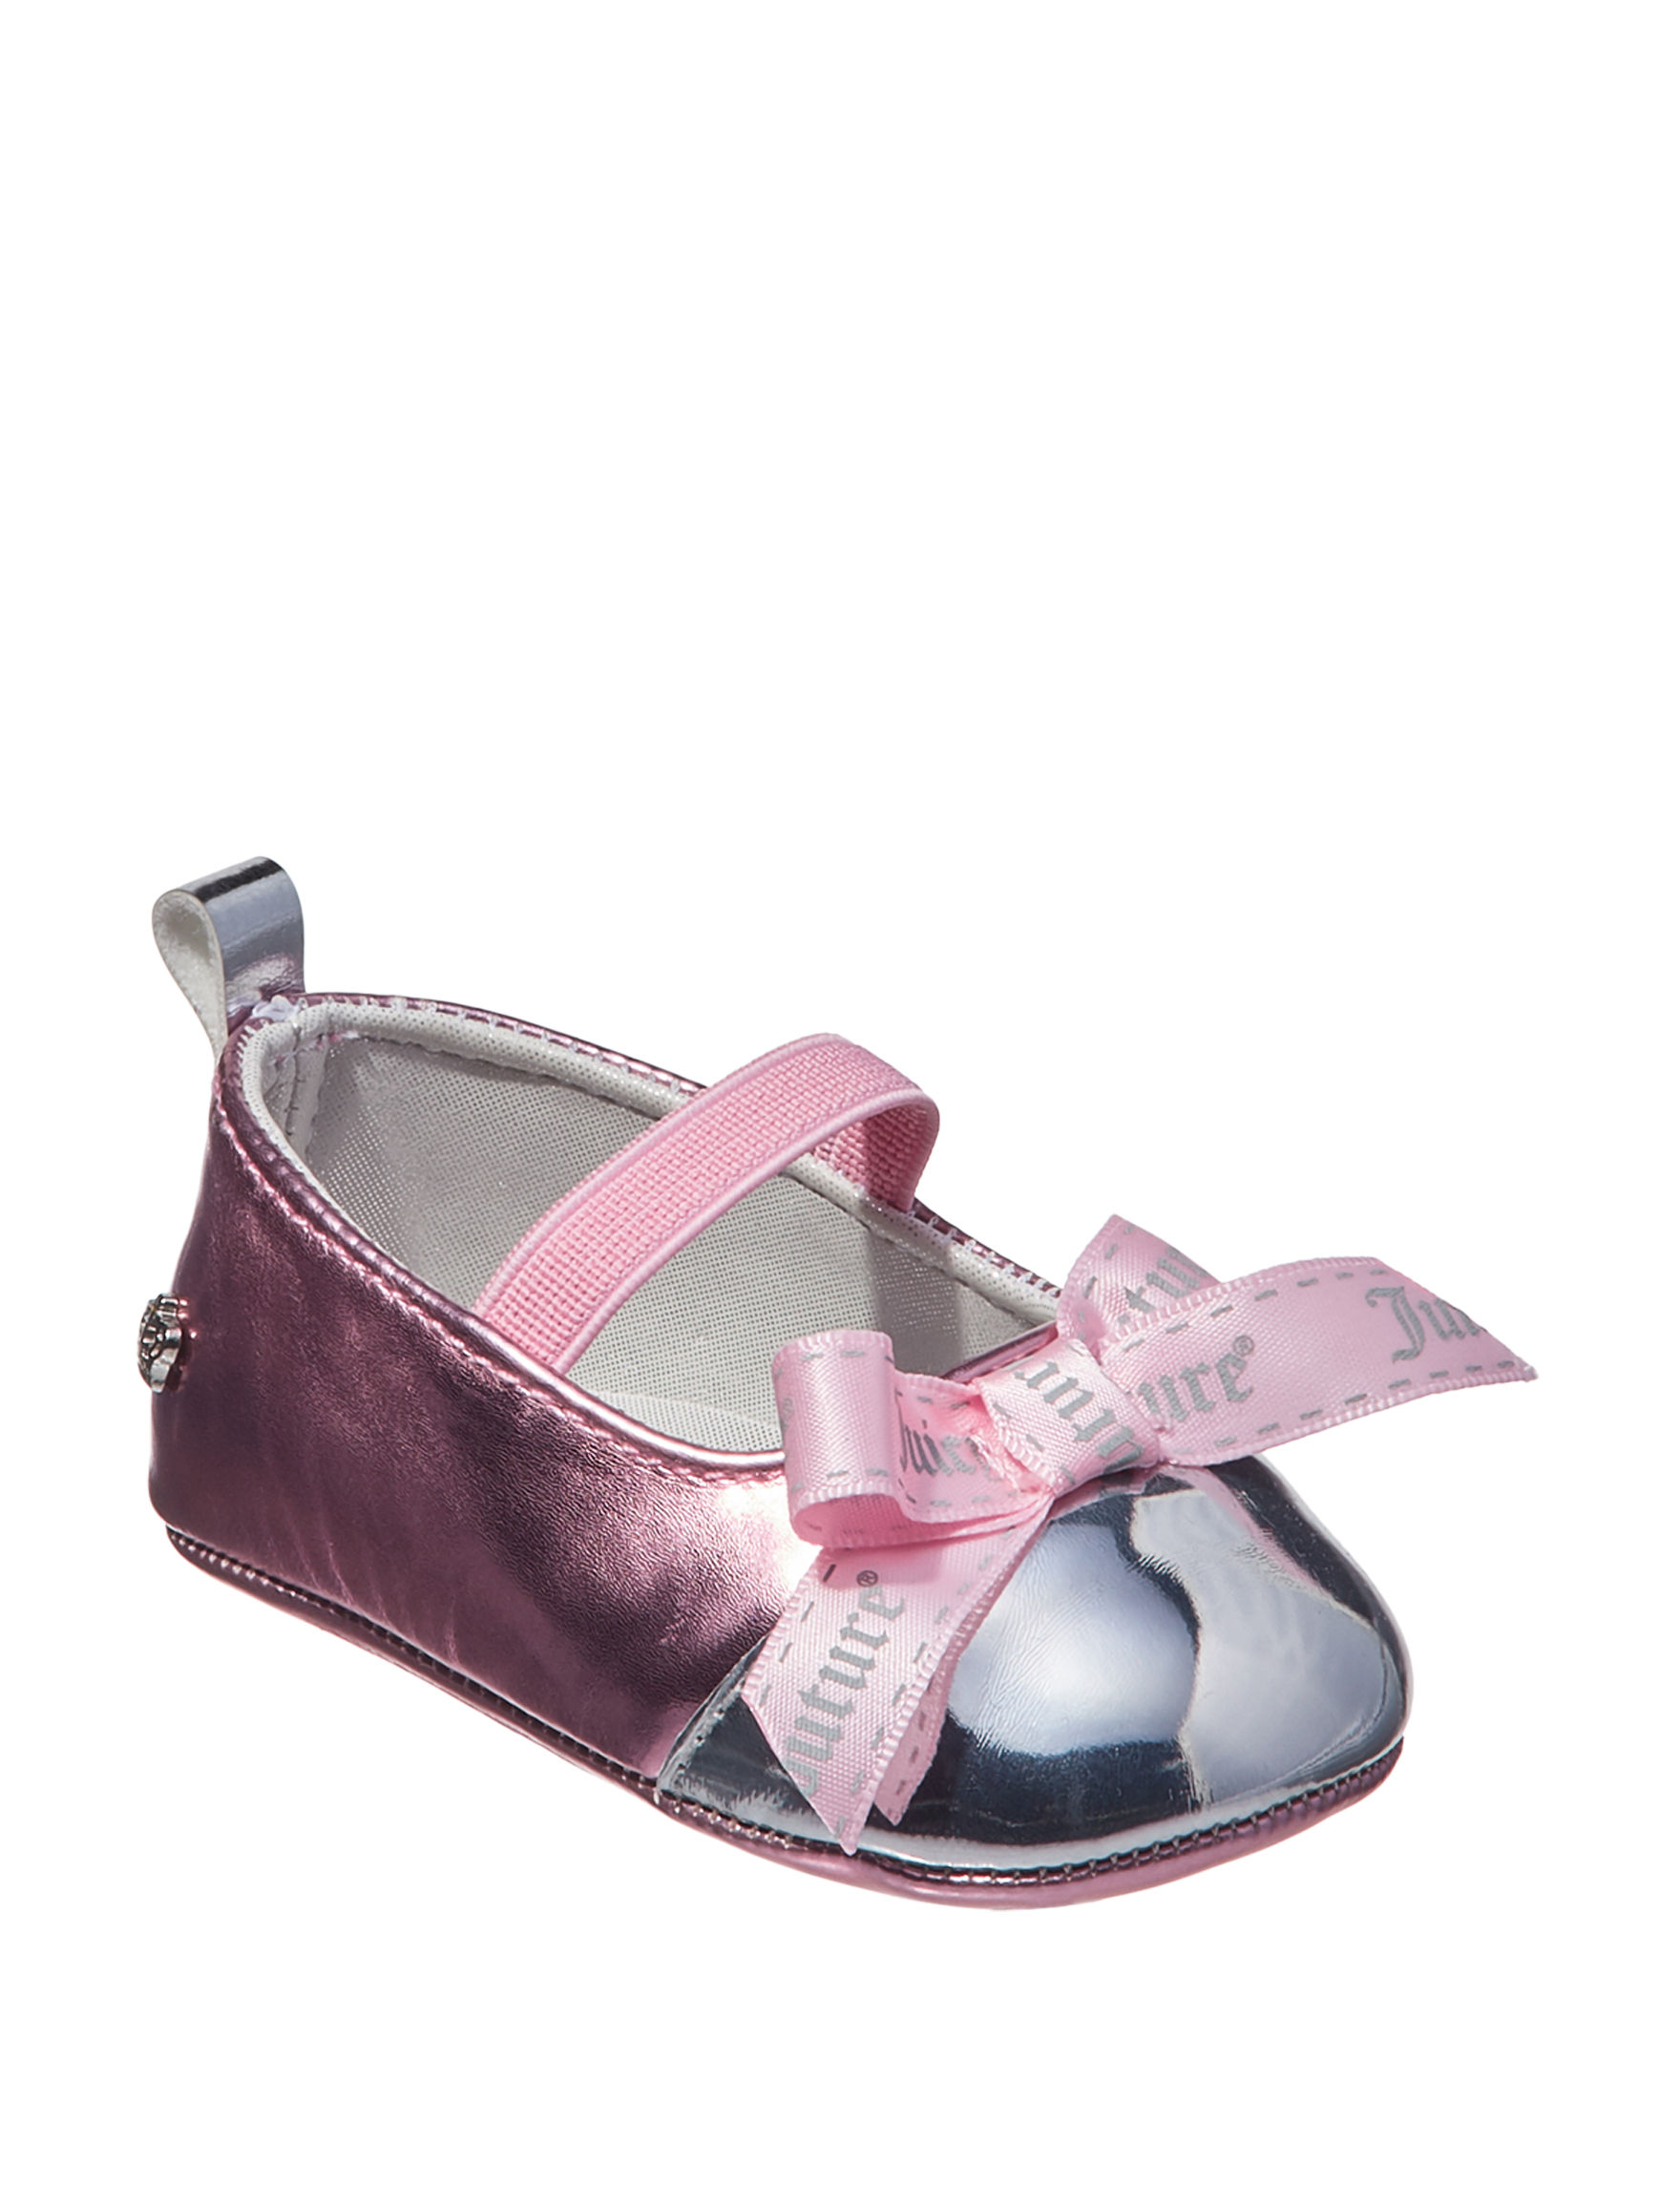 e8459e668f Juicy Couture Baby Venice Crib Shoes - Baby 1-4